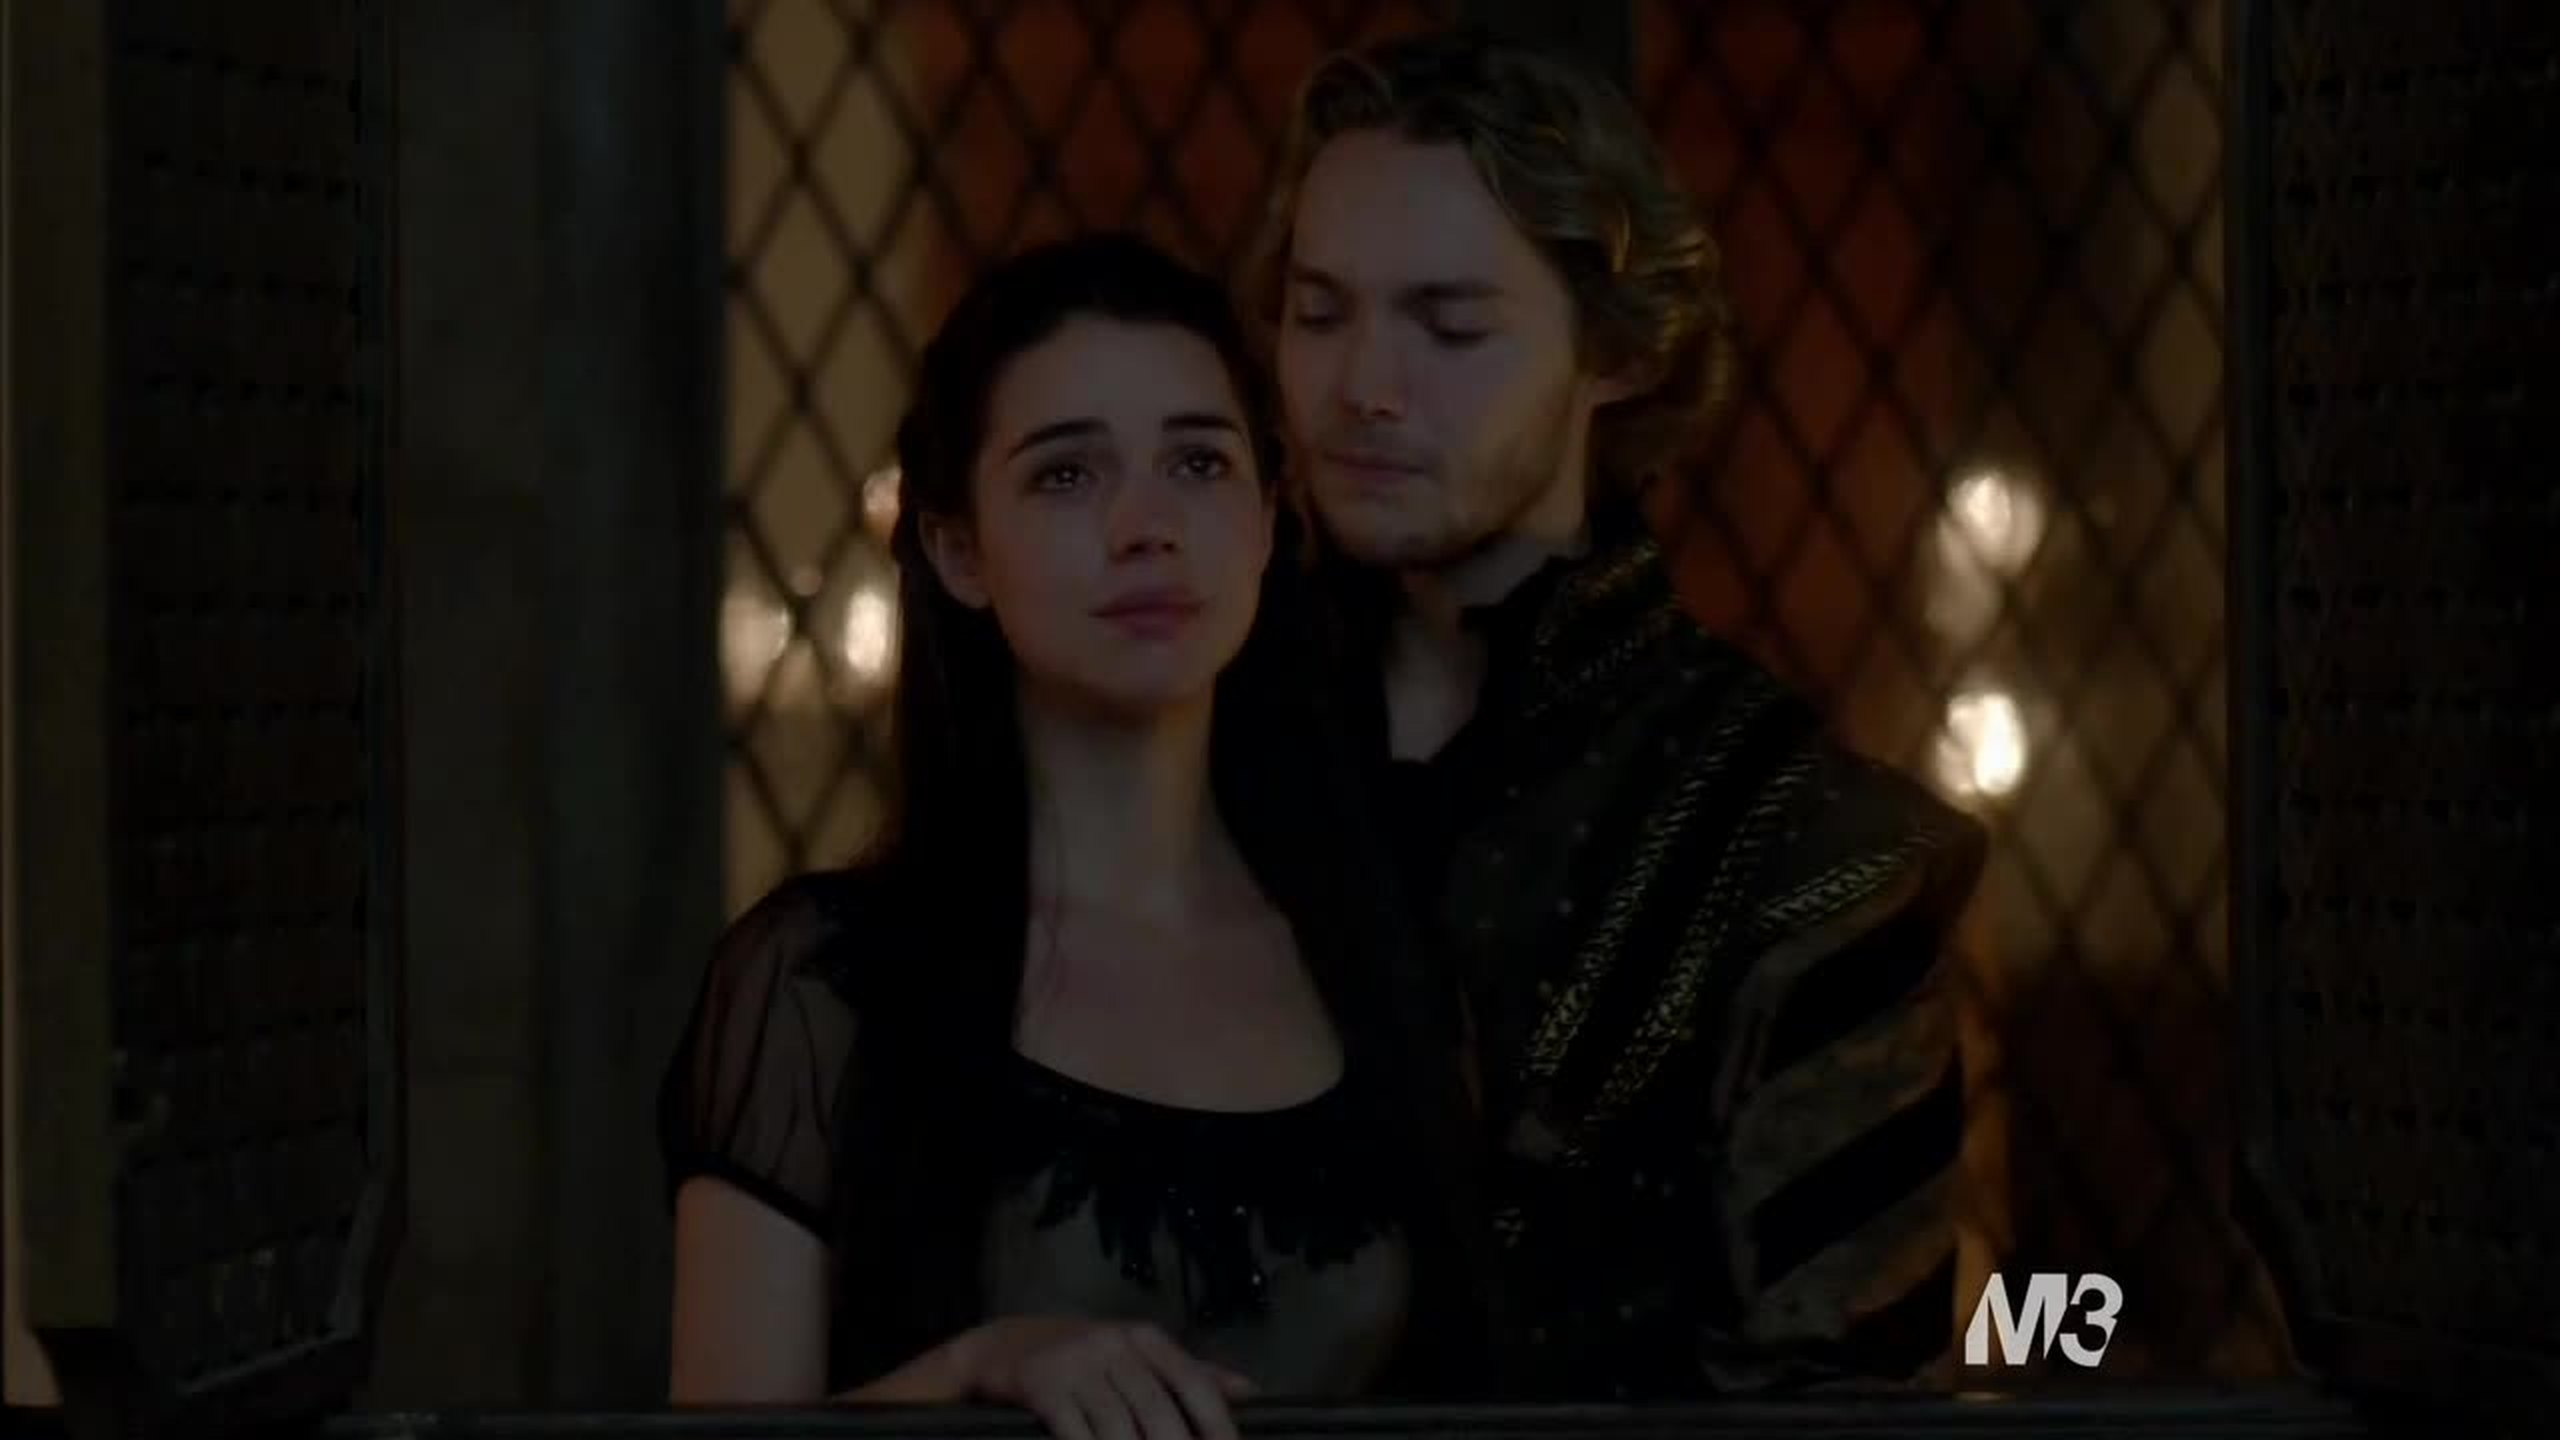 Adelaide Kane's acting was just amazing. This episode was heartbreaking.